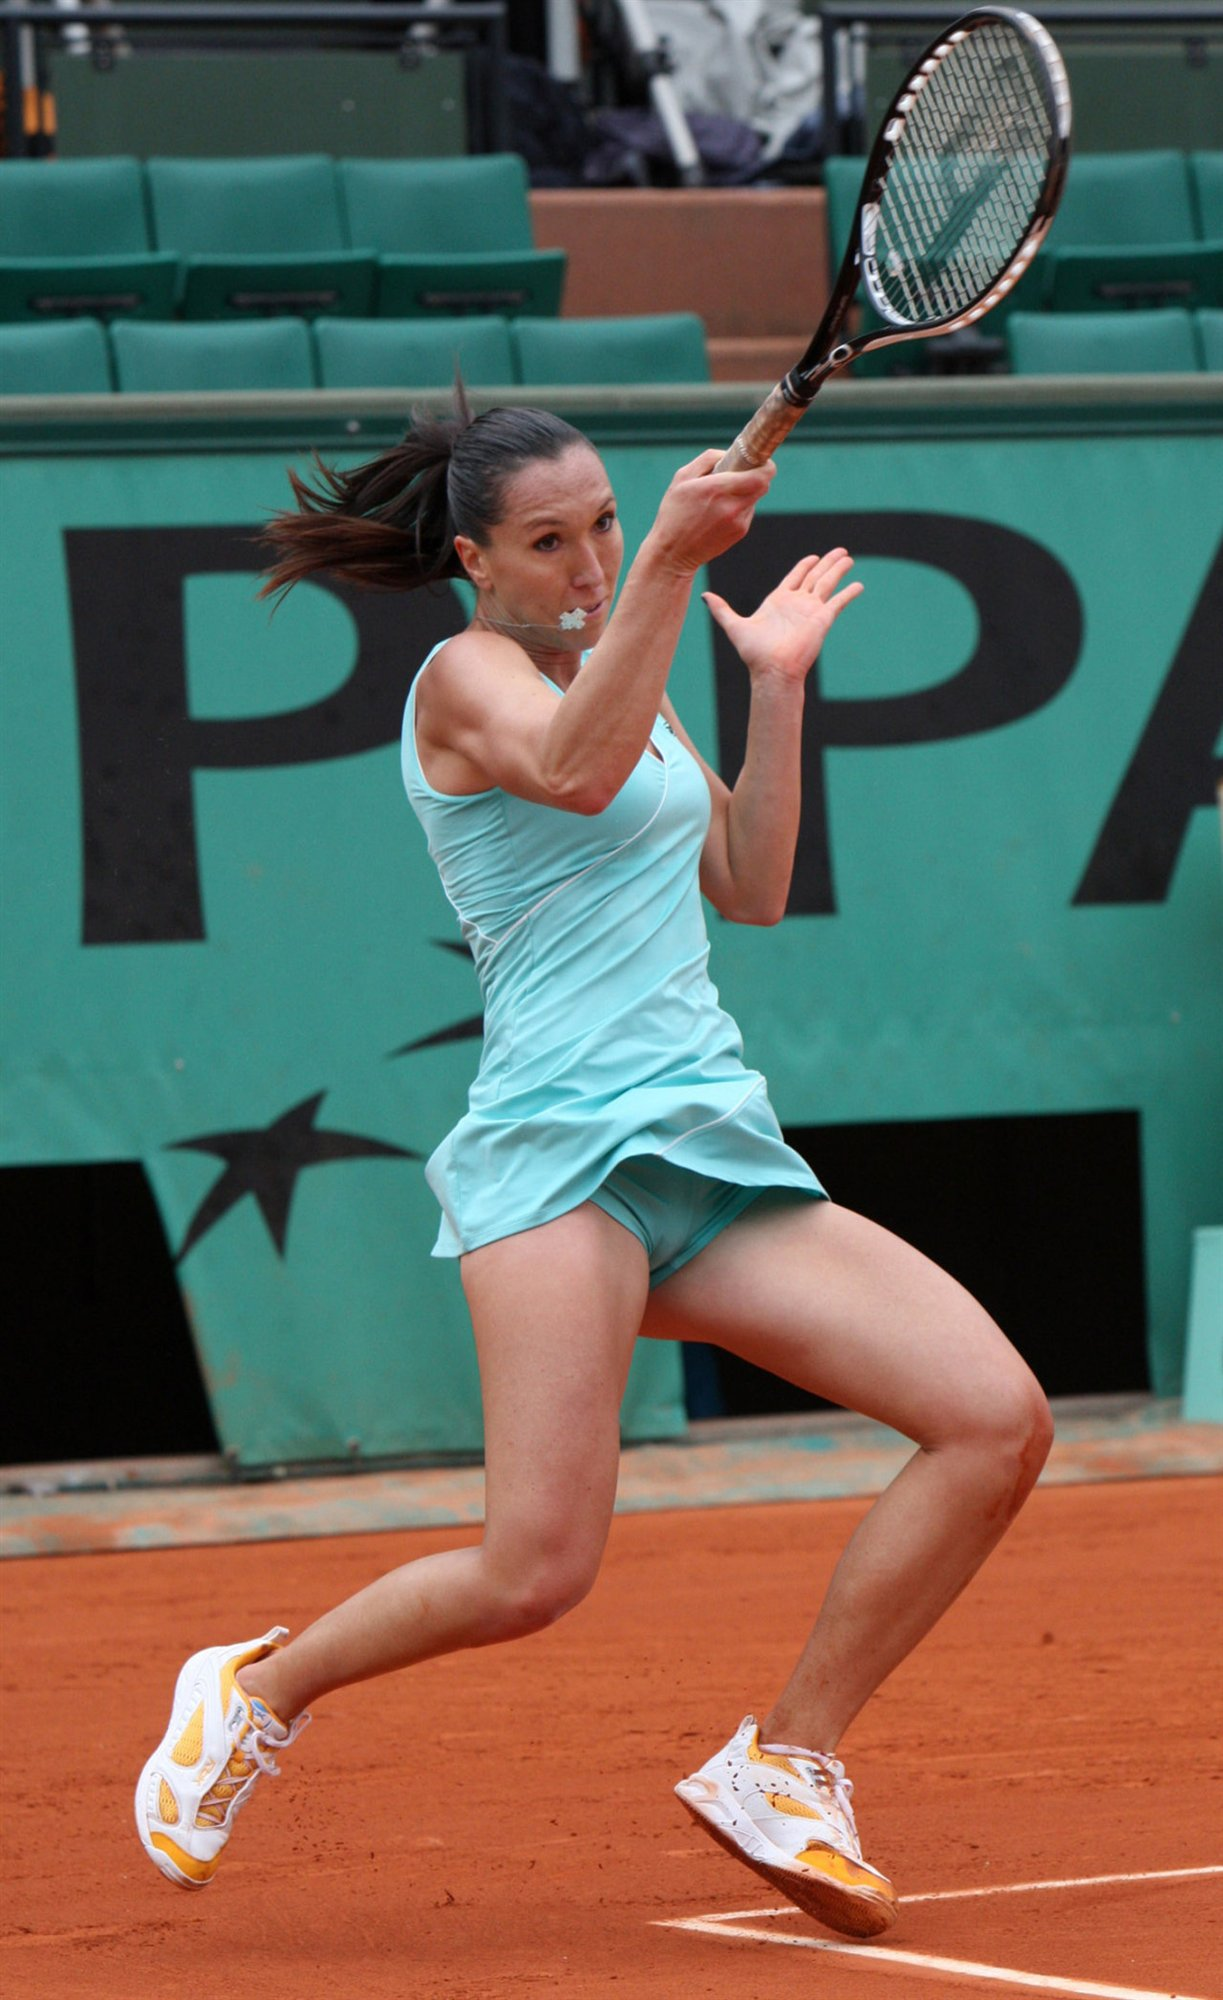 Jelena Jankovic Of Serbia Plays A Shot In Her Round 3 Picture